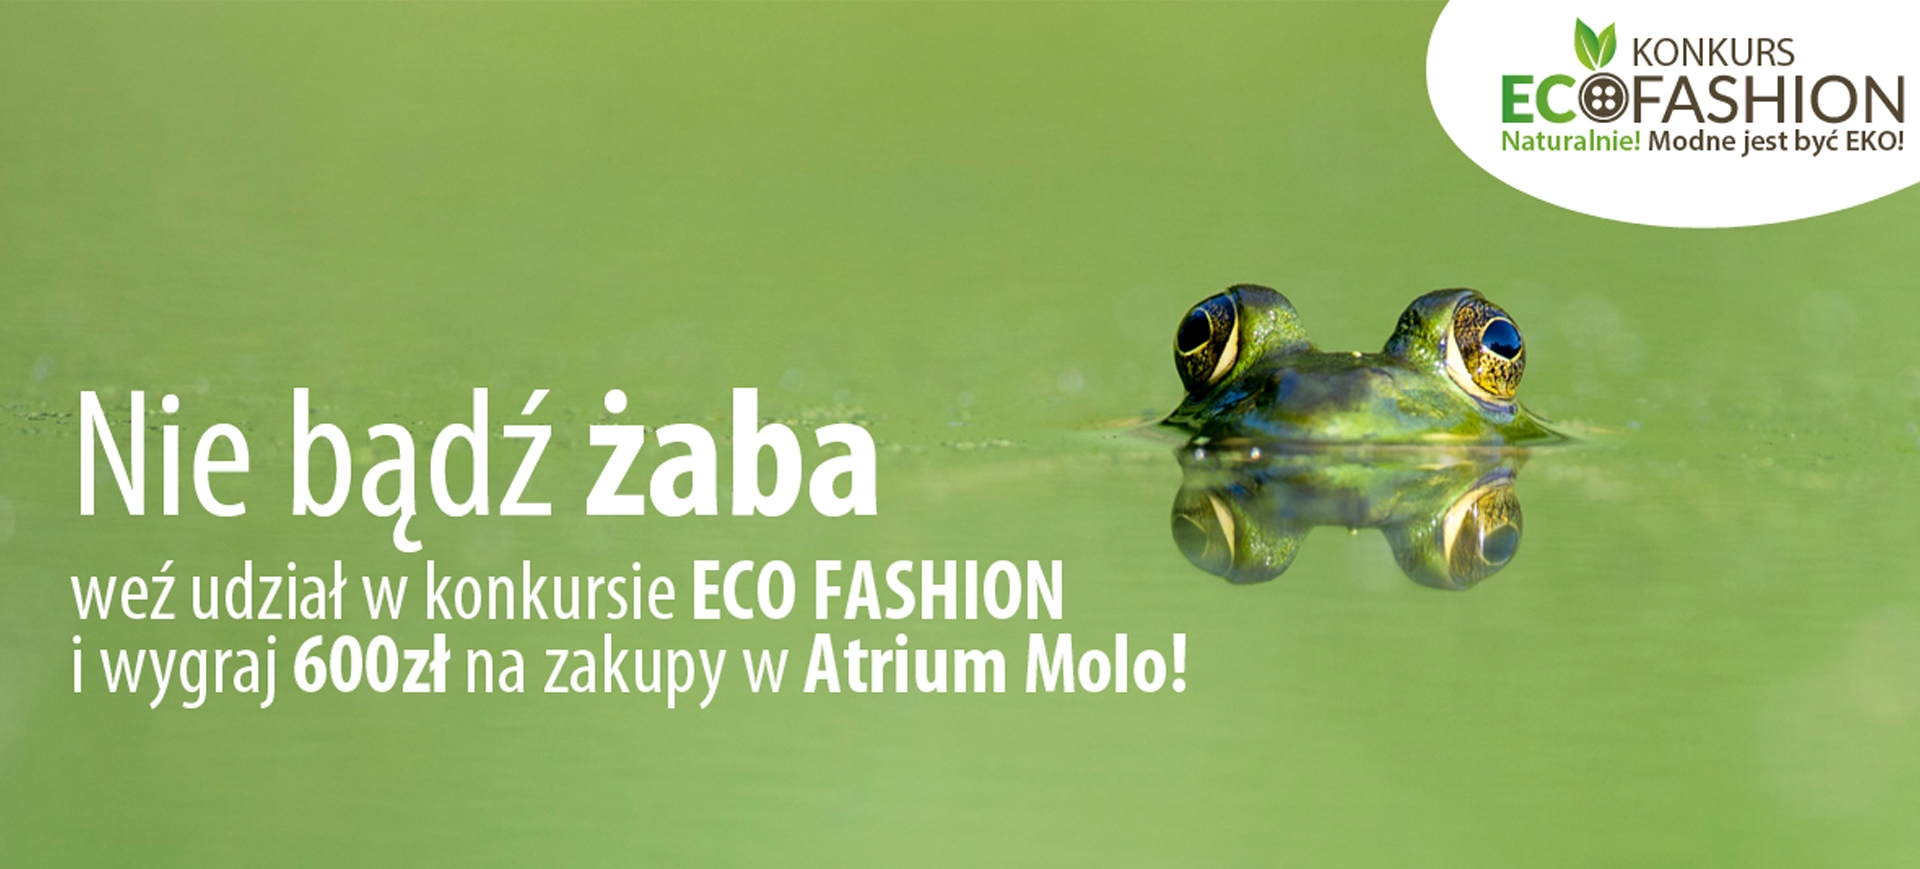 Finał konkursu Eco Fashion